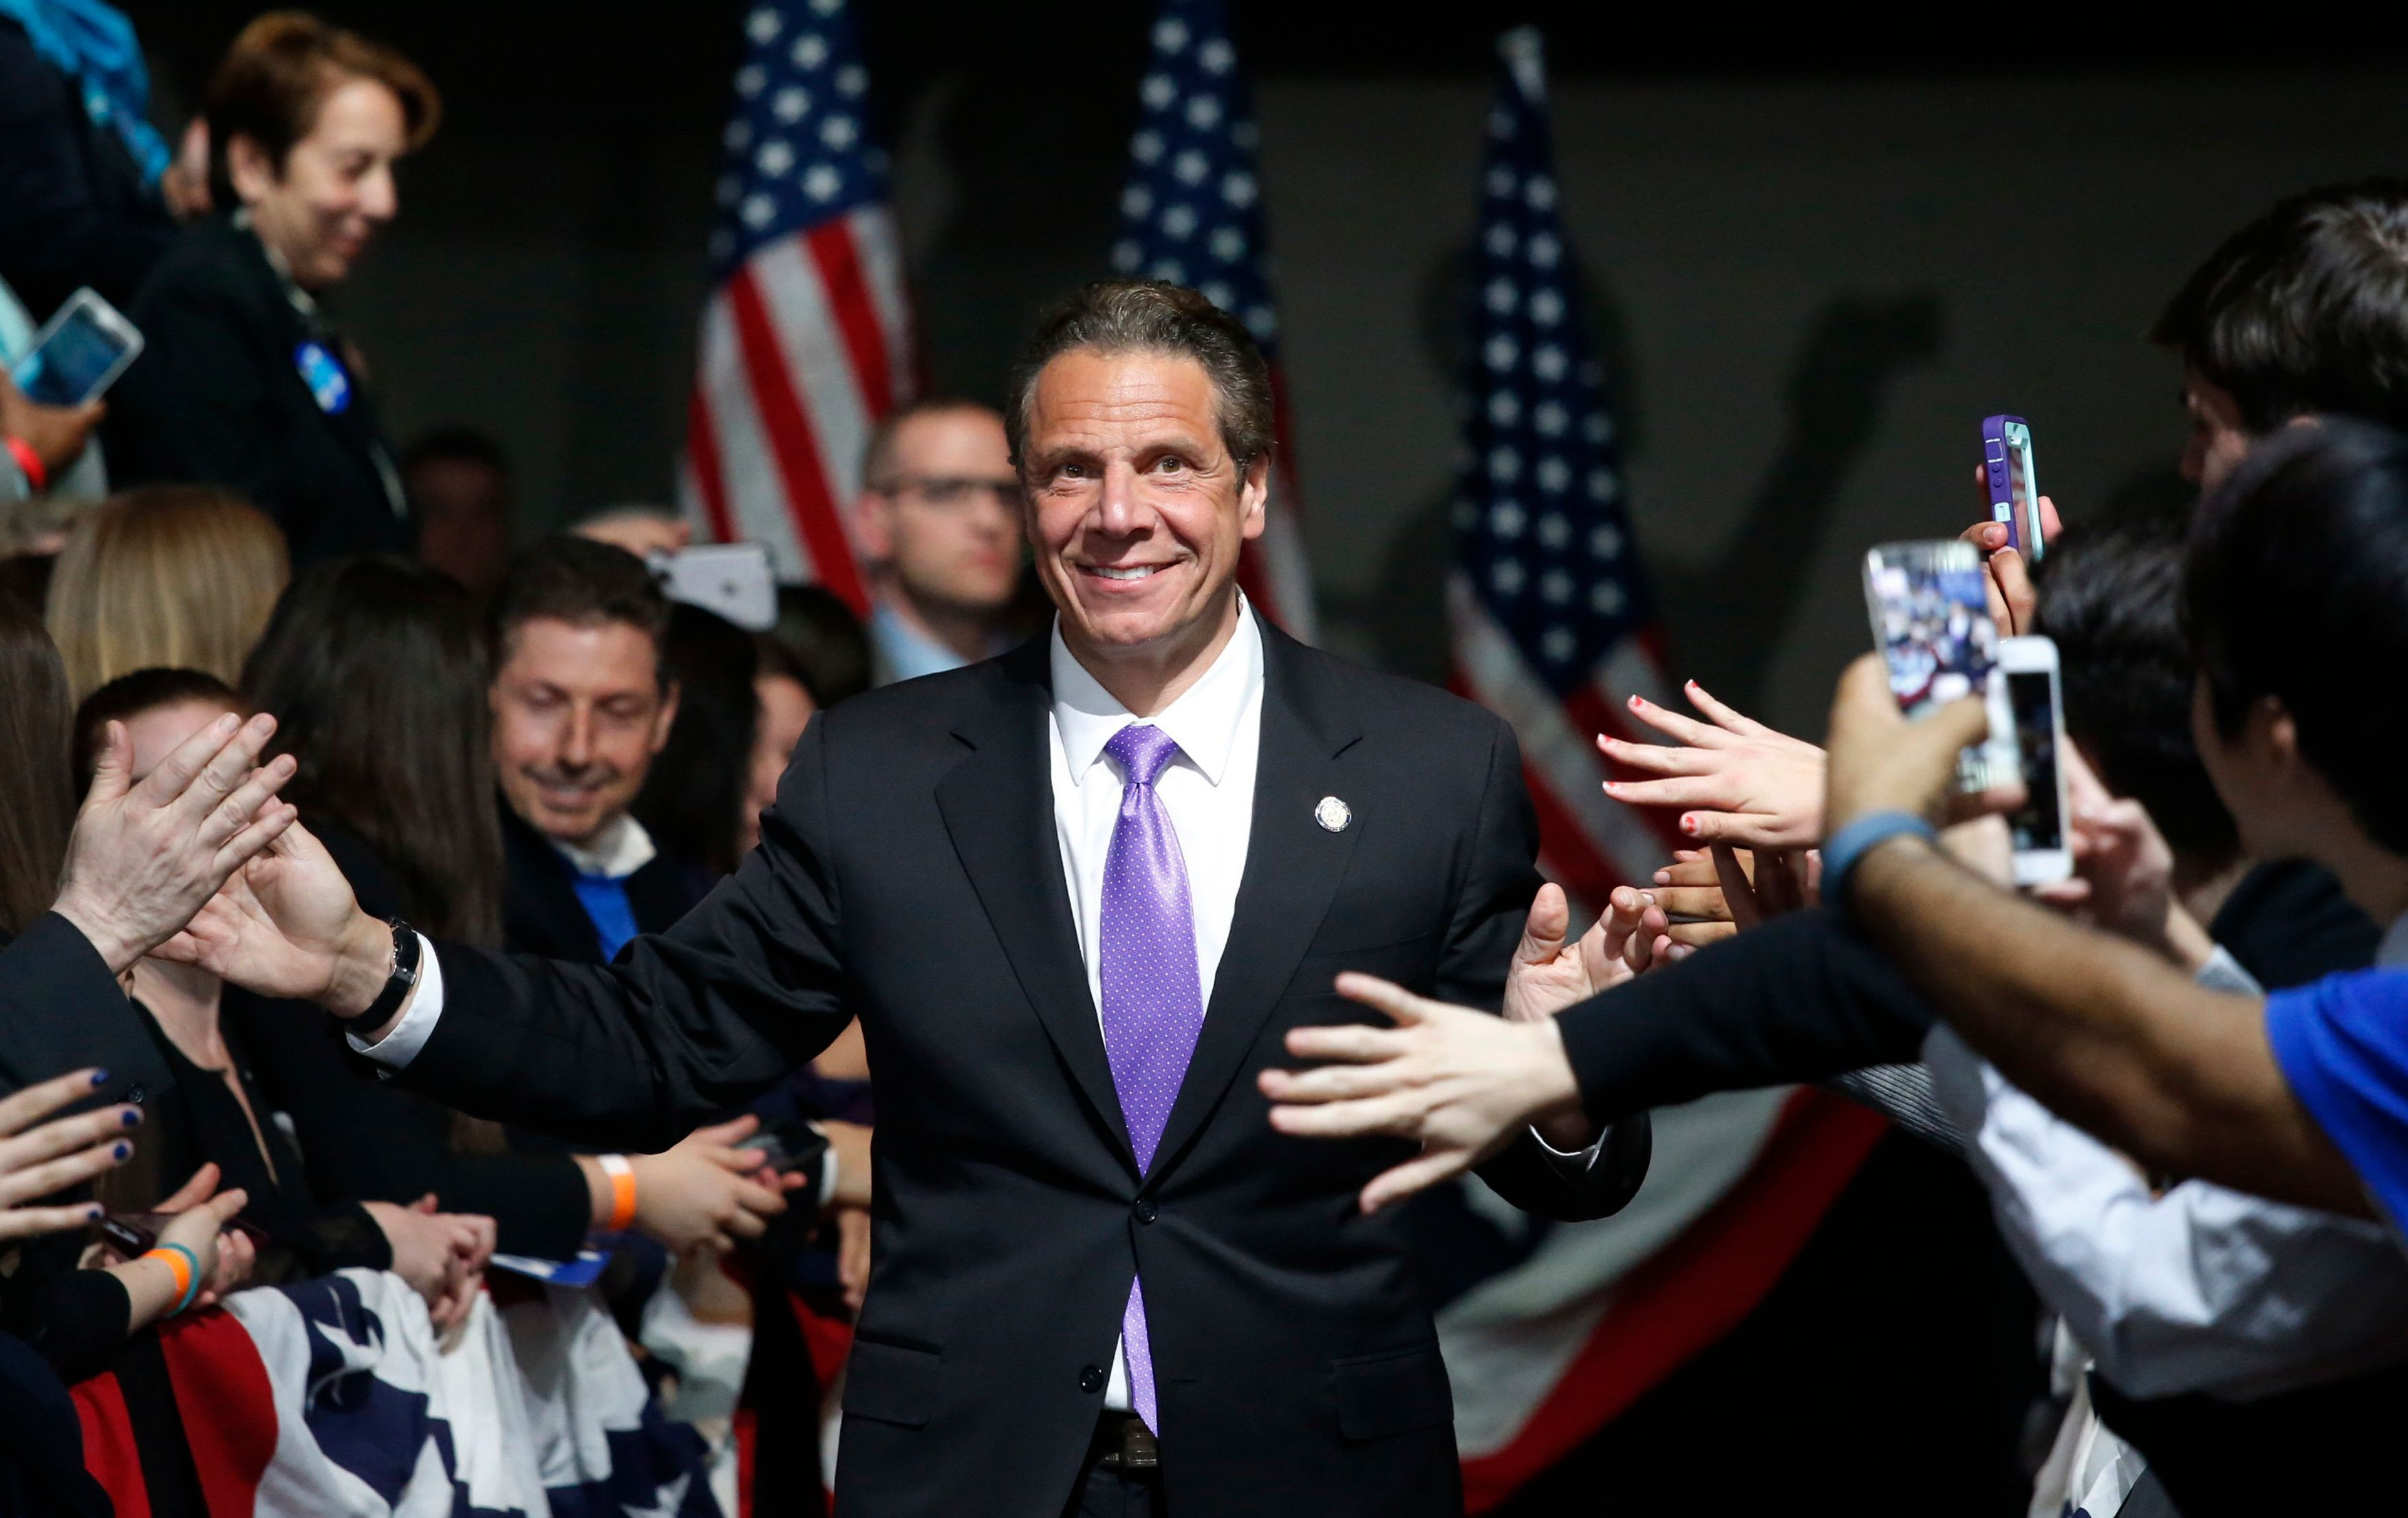 New York State Governor Andrew Cuomo enters the room before the arrival of Democratic U.S. presidential candidate Hillary Clinton at her New York presidential primary night rally in the Manhattan borough of New York City, U.S., April 19, 2016. REUTERS/Adrees Latif